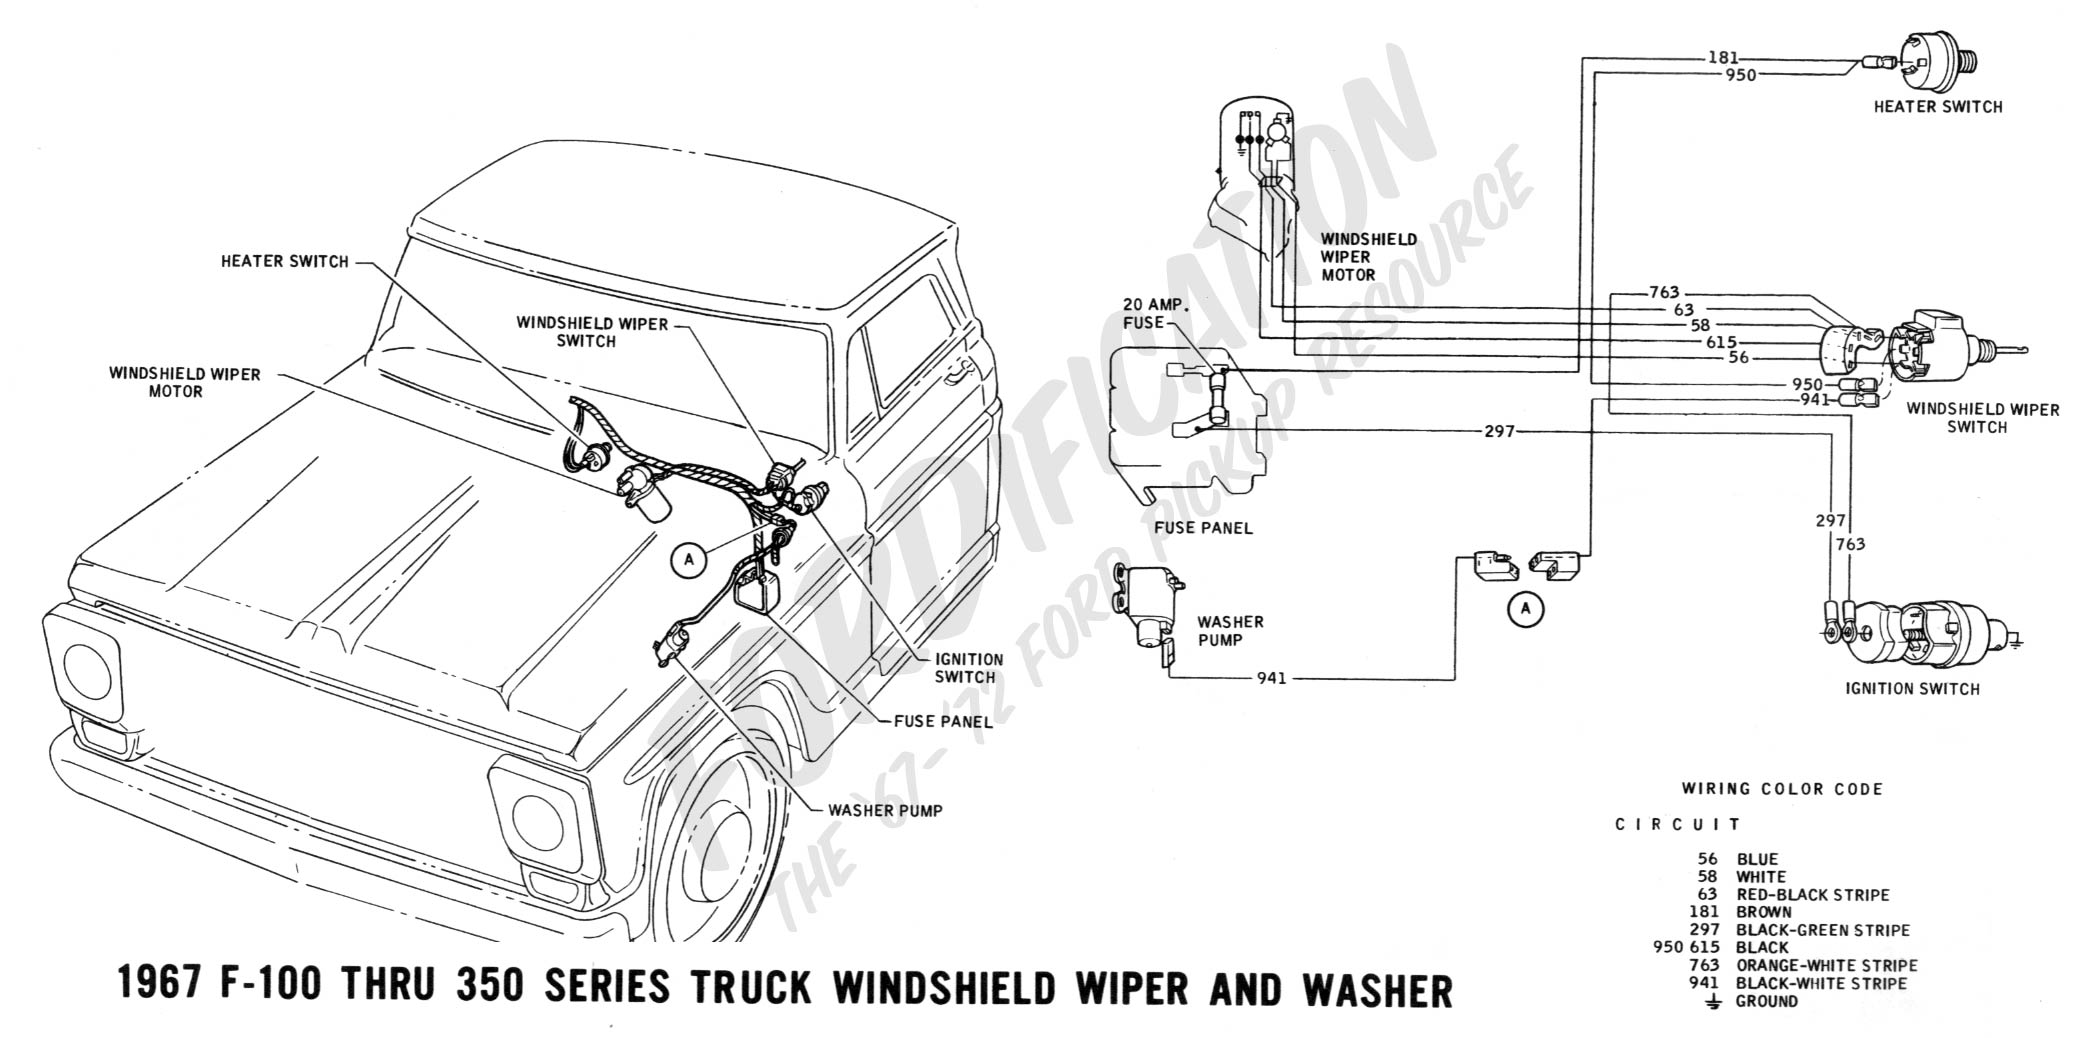 Acdelco Wiper Motor Wiring Diagram Library Model A Ford Ignition Lzk Gallery Truck Technical Drawings And Schematics Section H